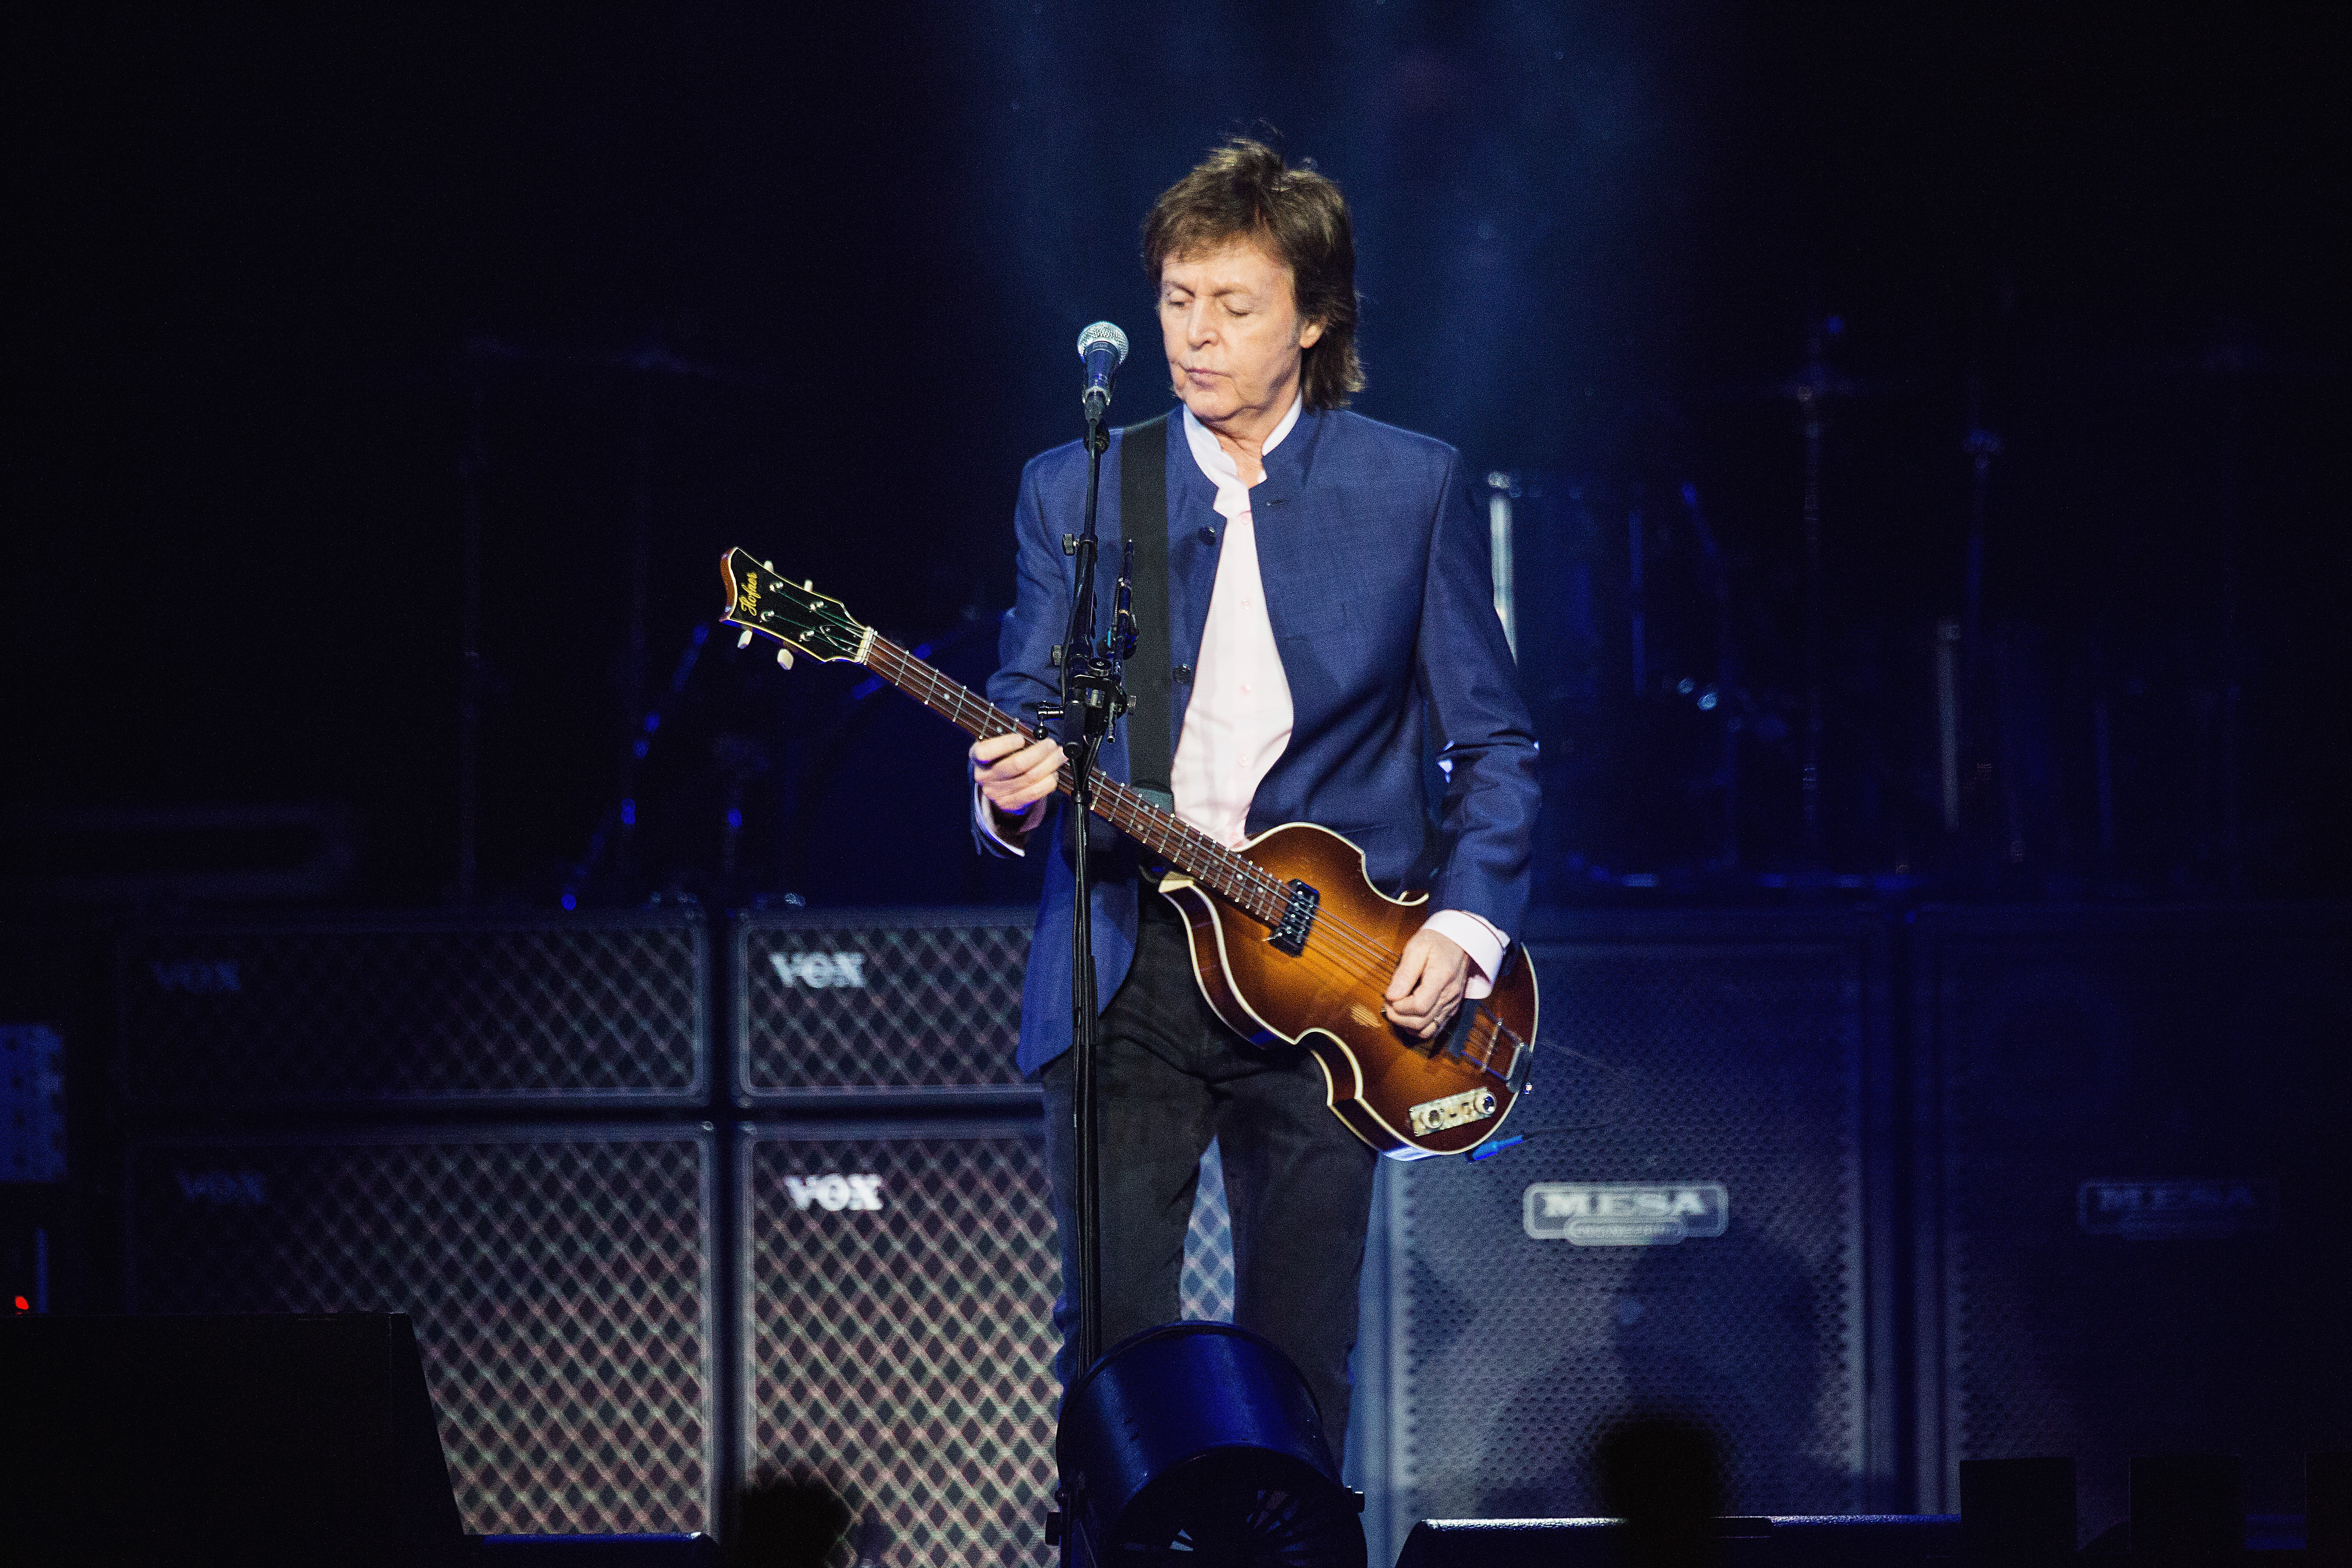 Paul McCartney performs on stage during the 'One on One' tour at Key Arena on April 17, 2016 in Seattle, Washington.